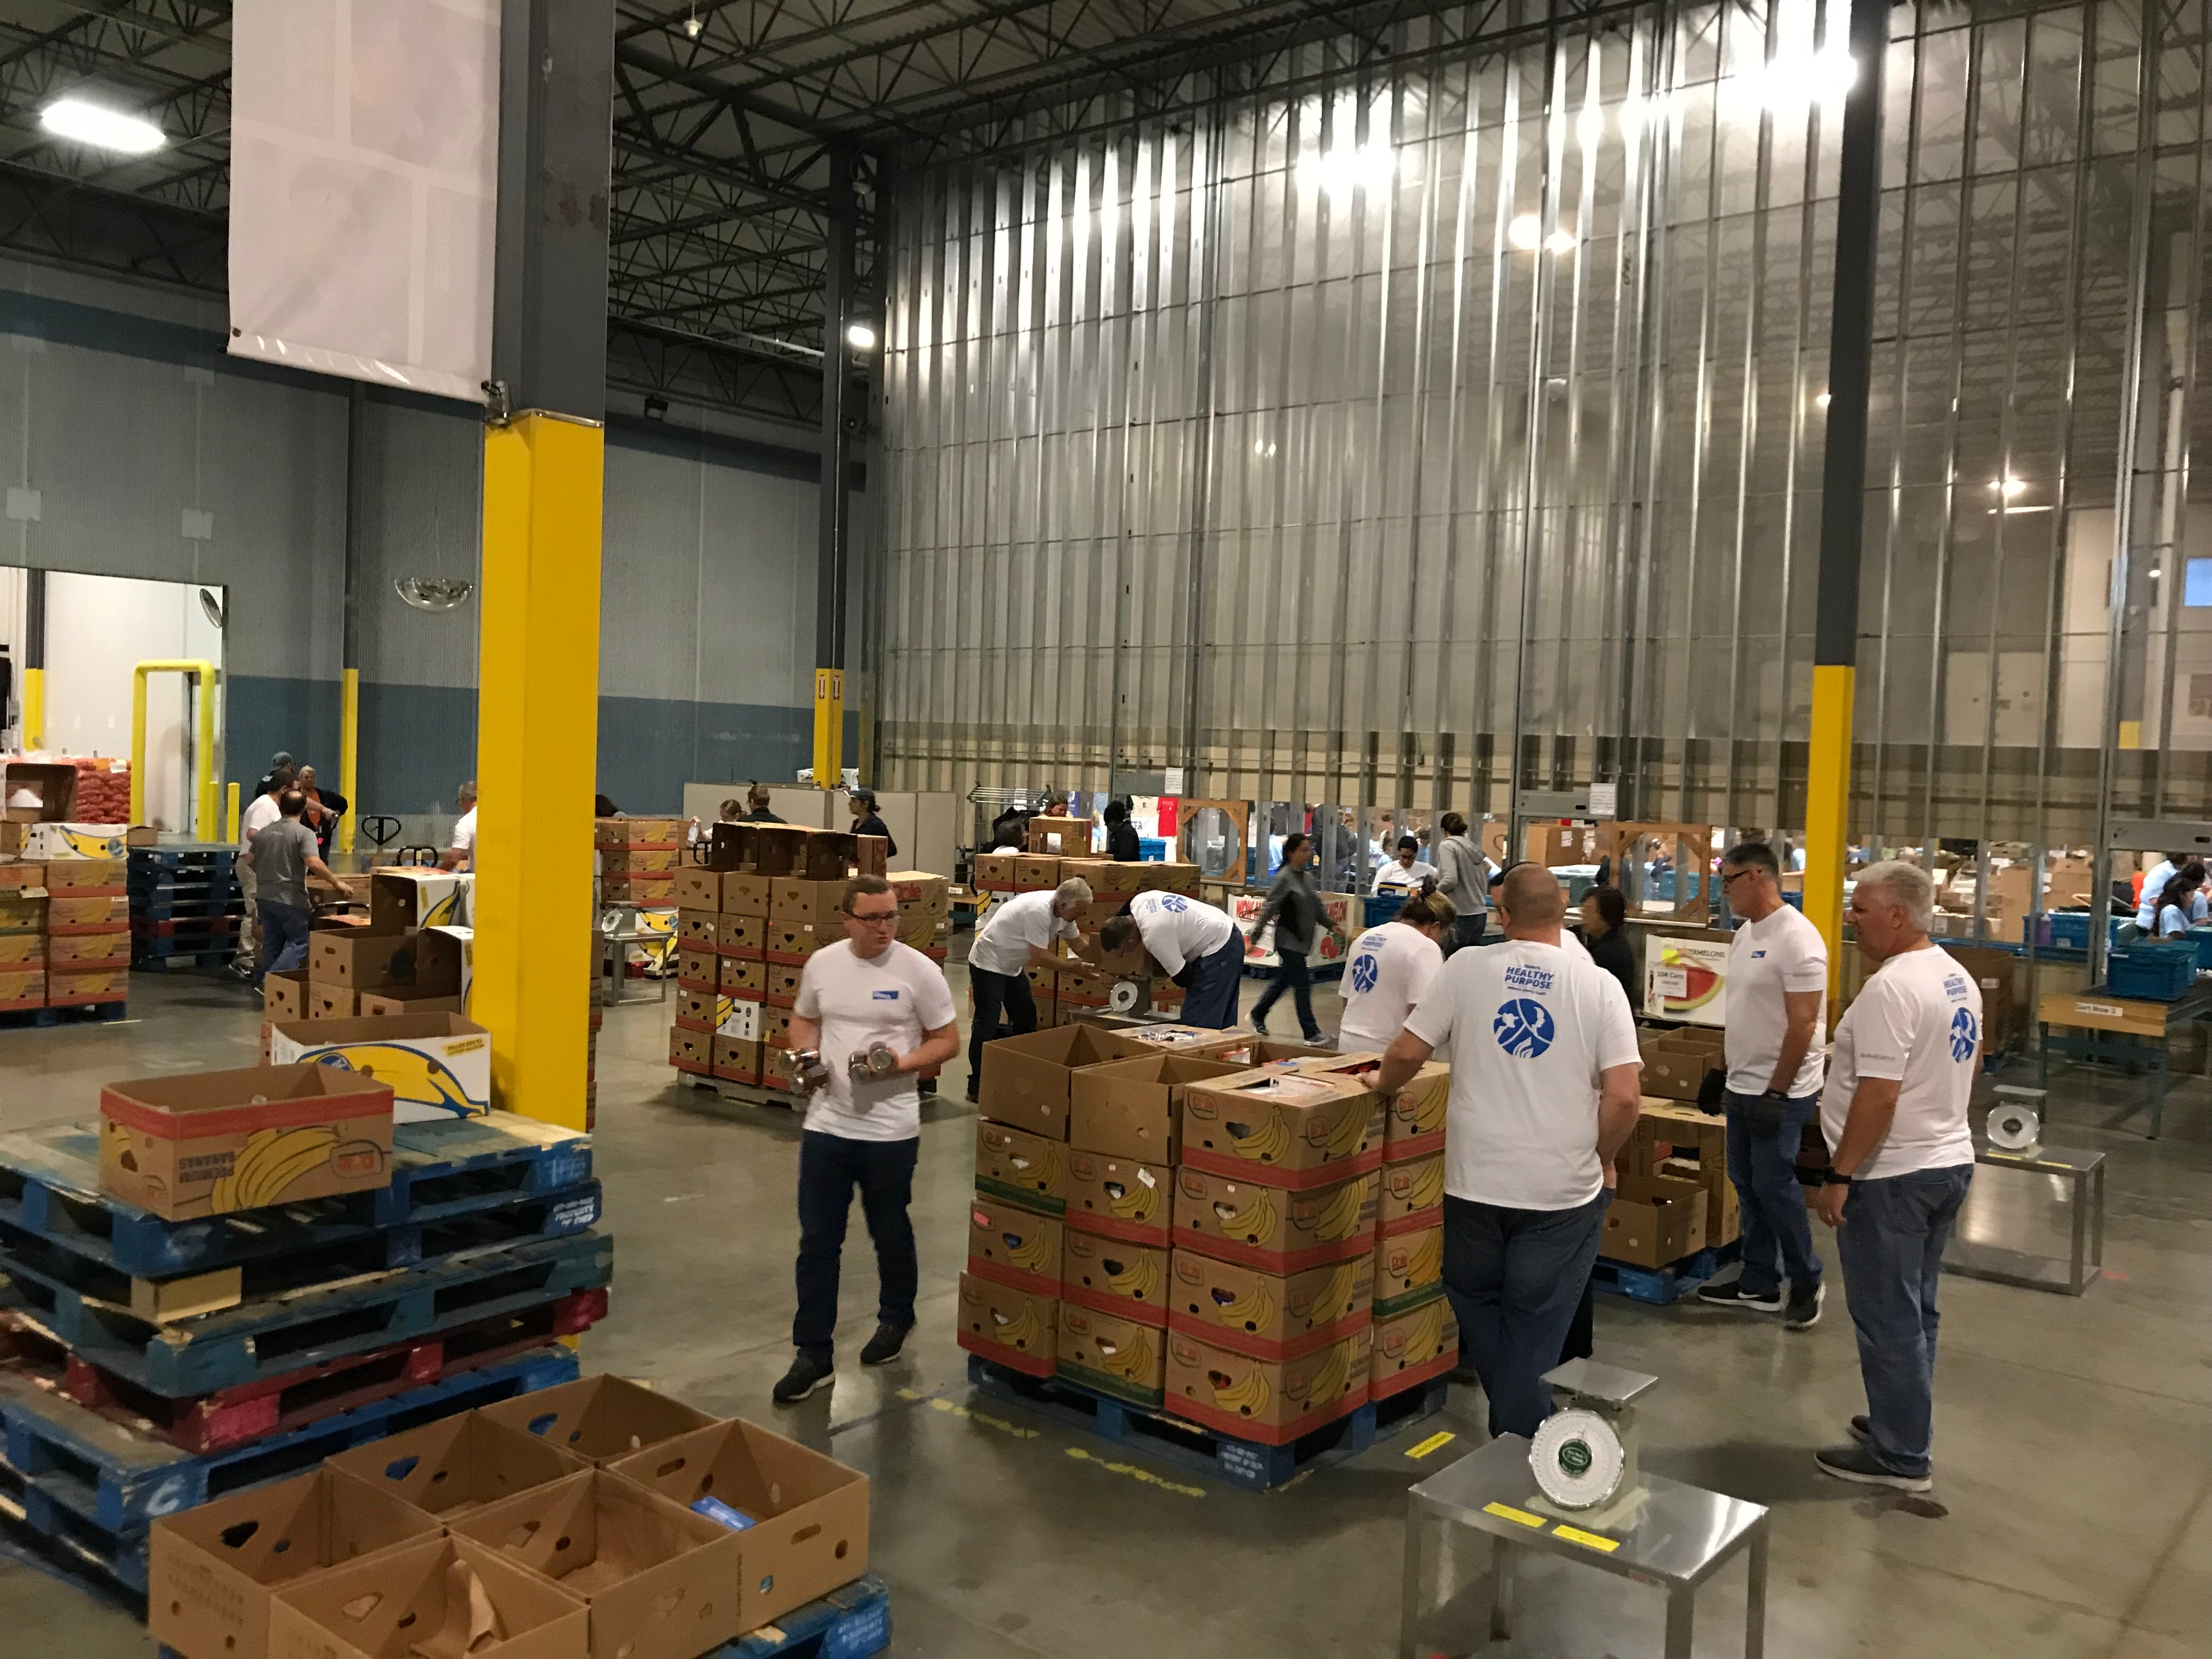 Elanco employees working in a food bank